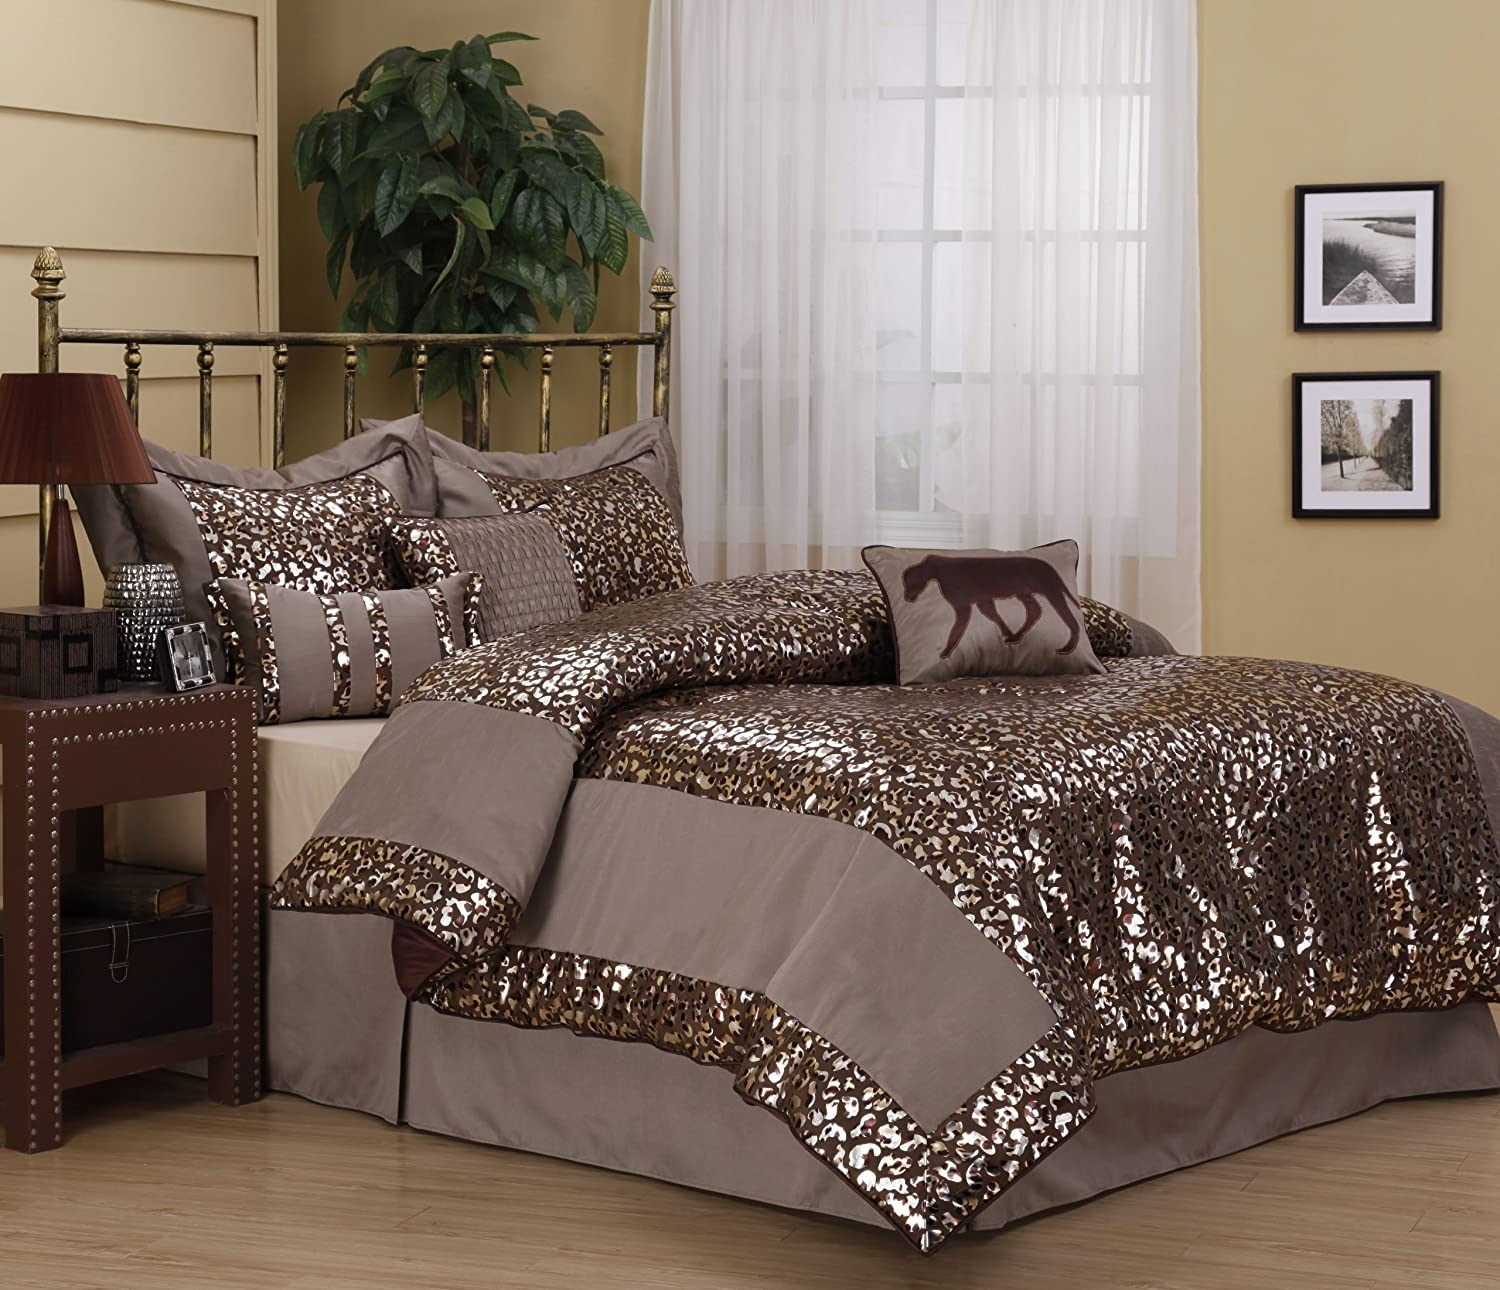 Leopard Print Comforter Set Queen Ideas On Foter